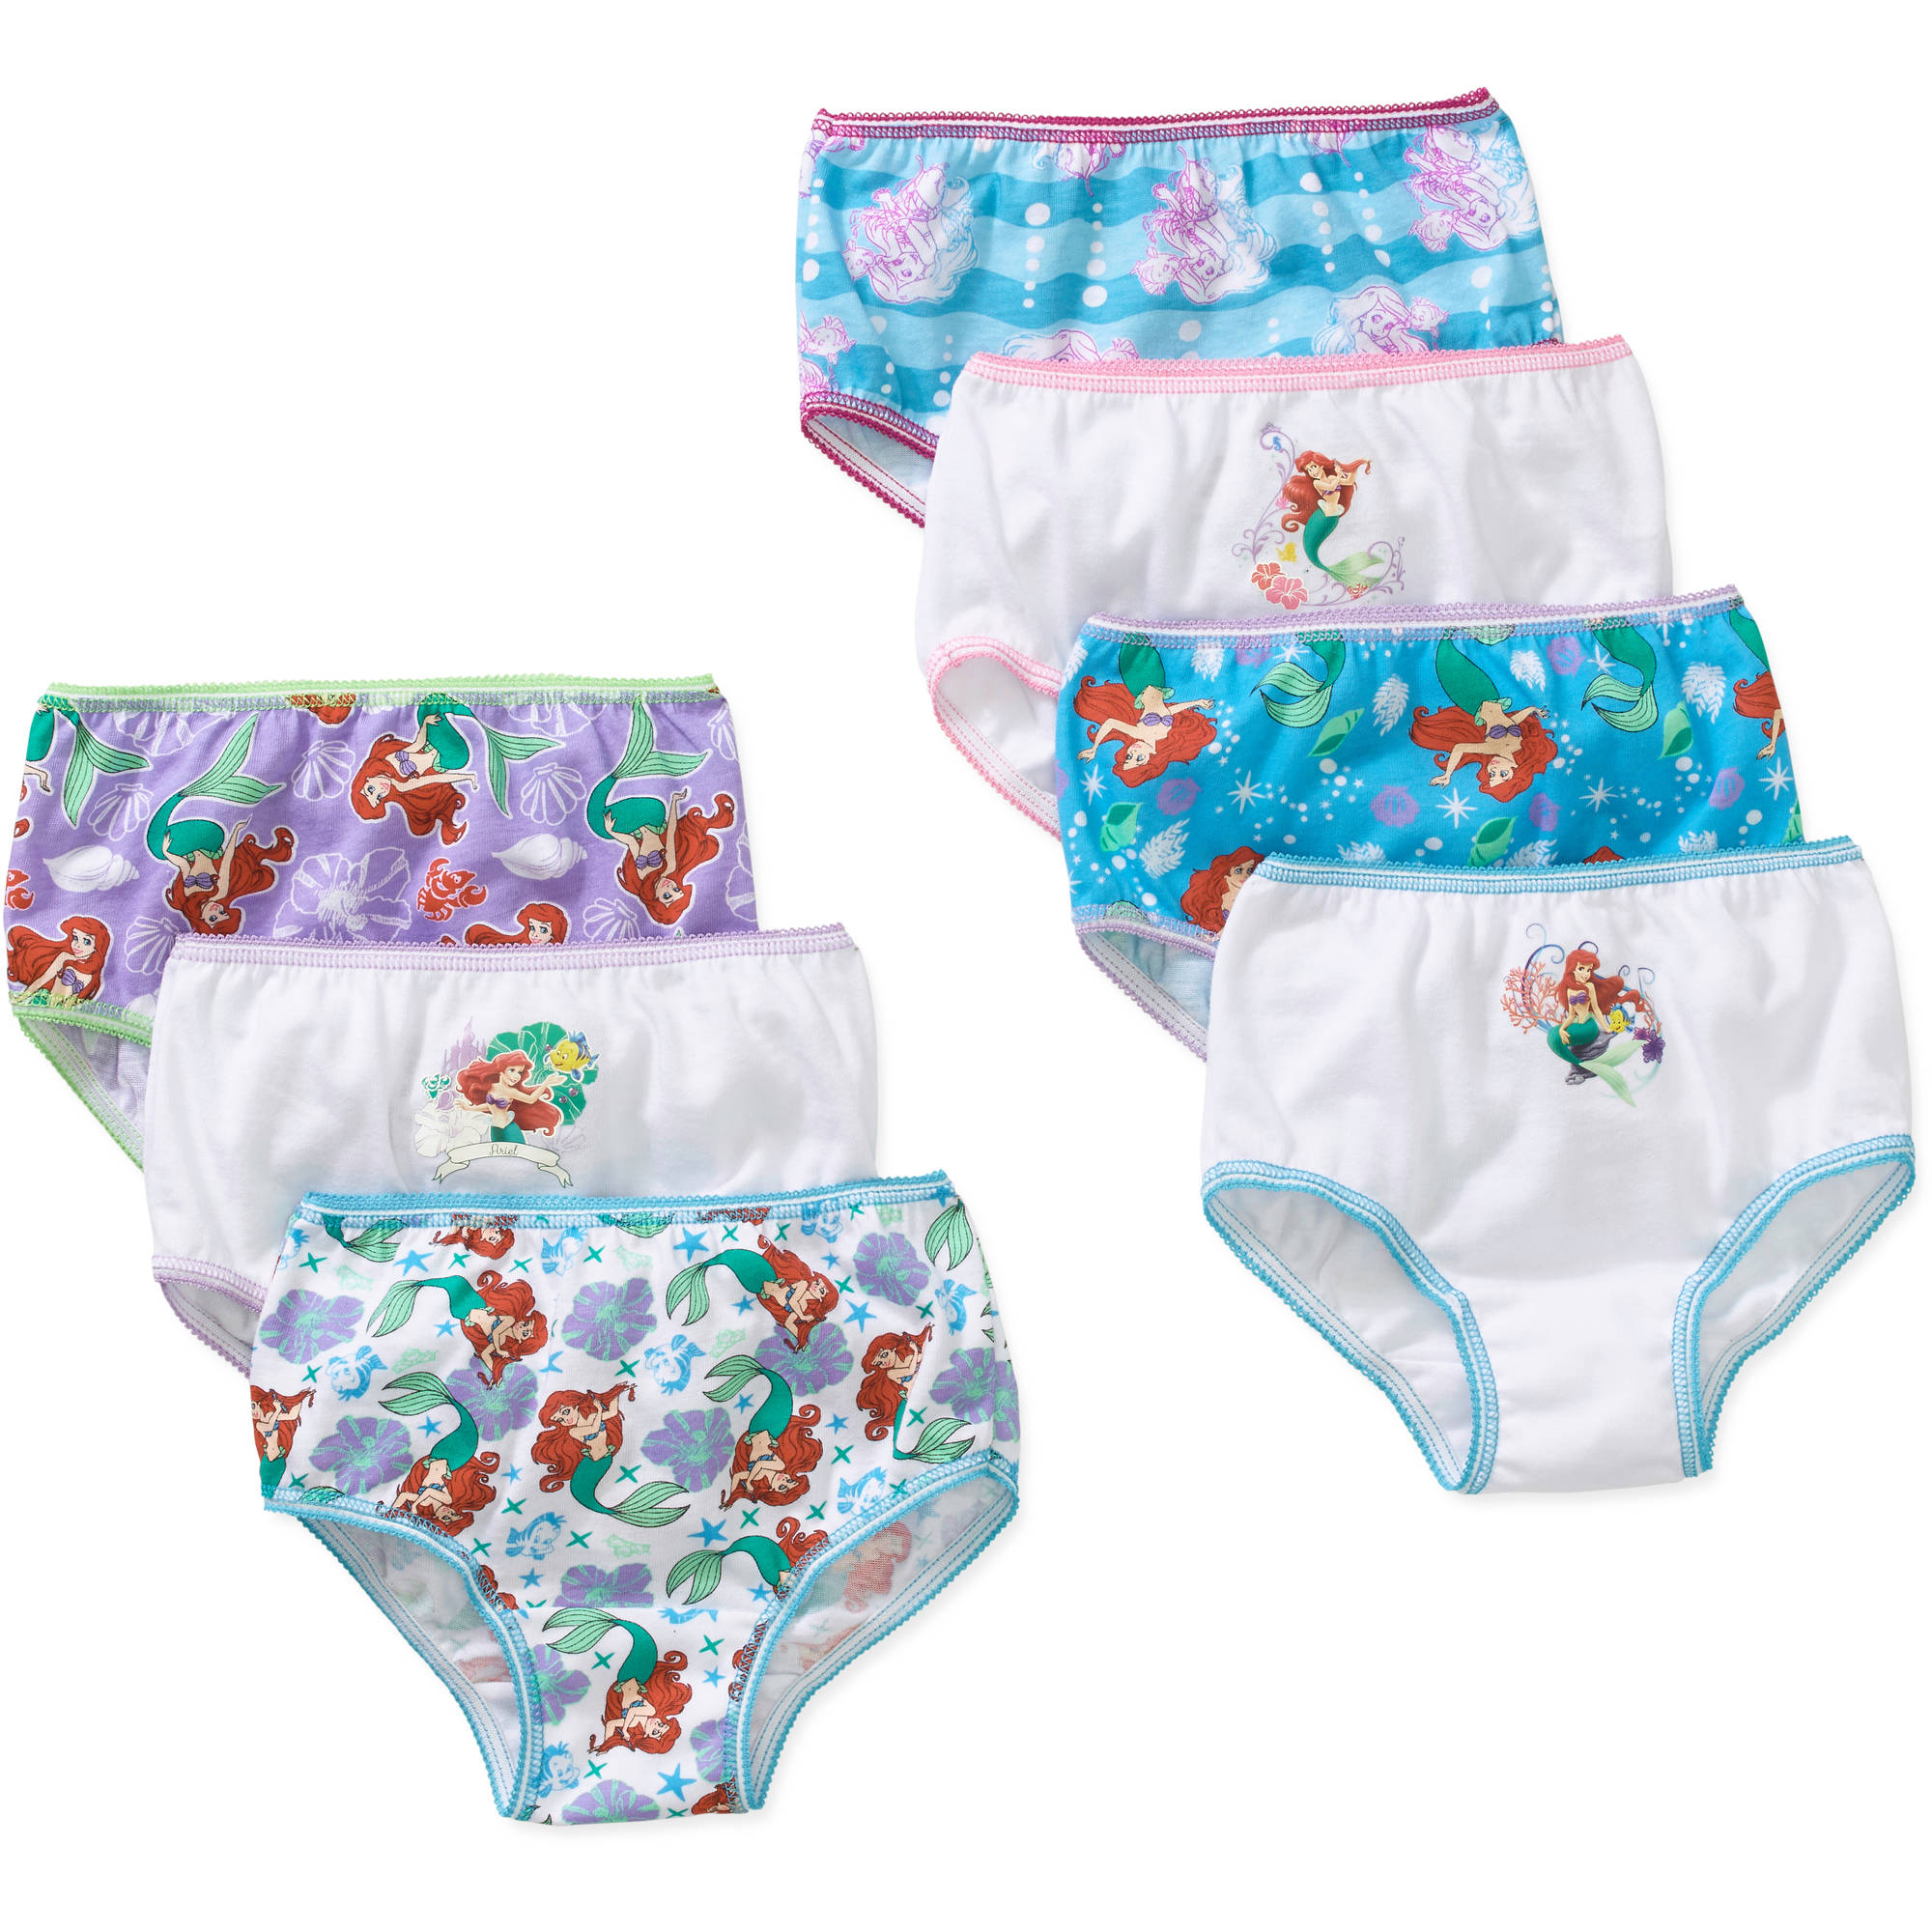 Disney Little Mermaid Ariel Toddler Girls Underwear, 7 Pack